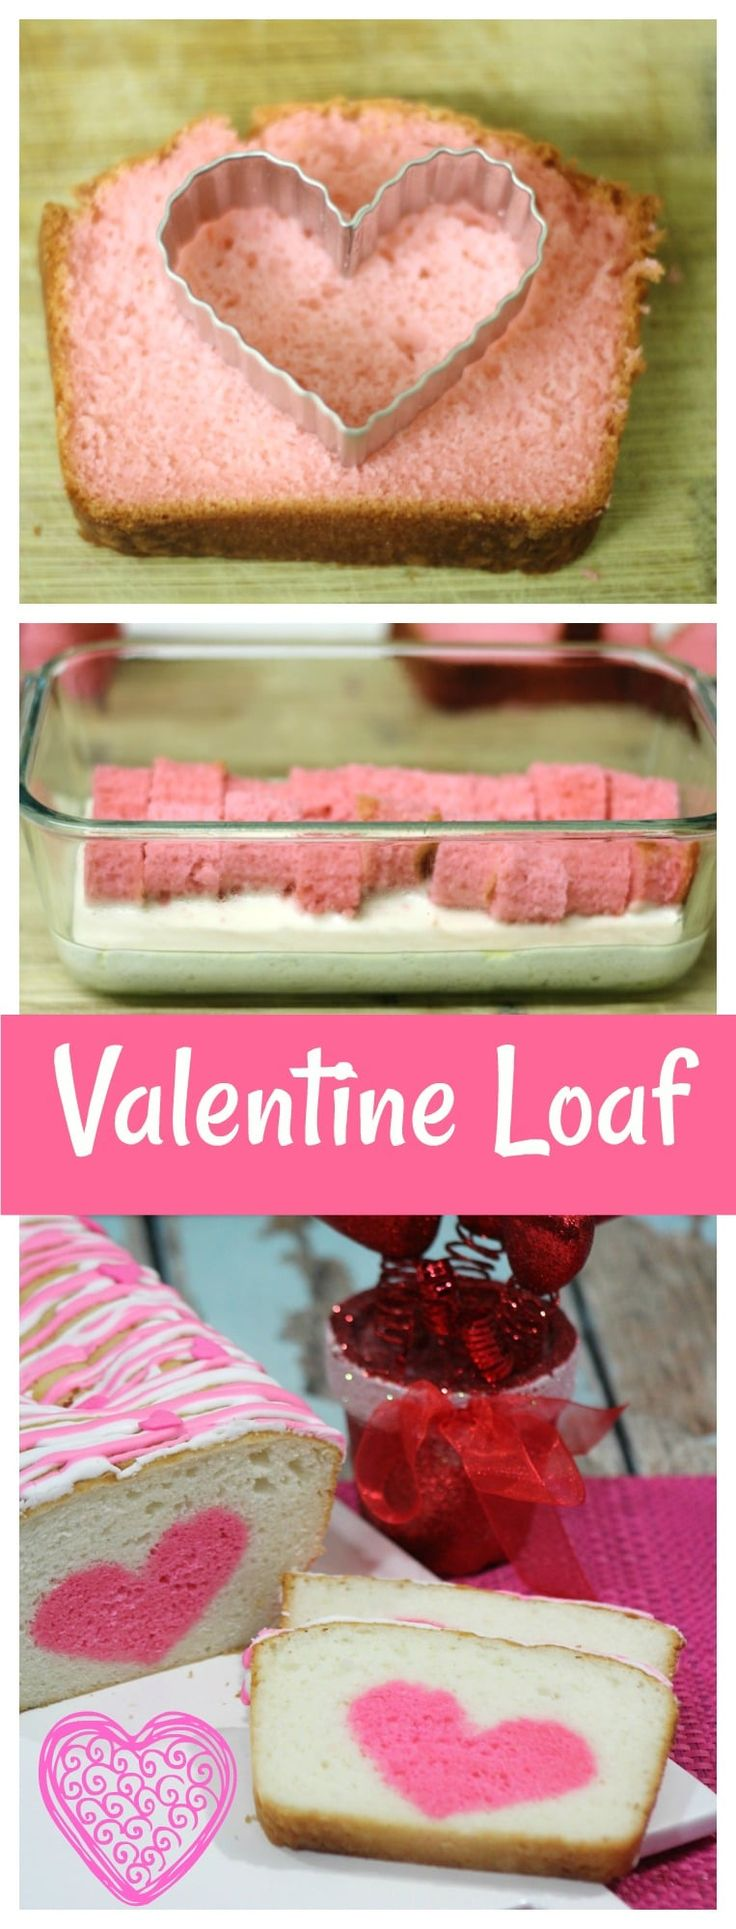 Vanilla Strawberry Loaf Heart Cake